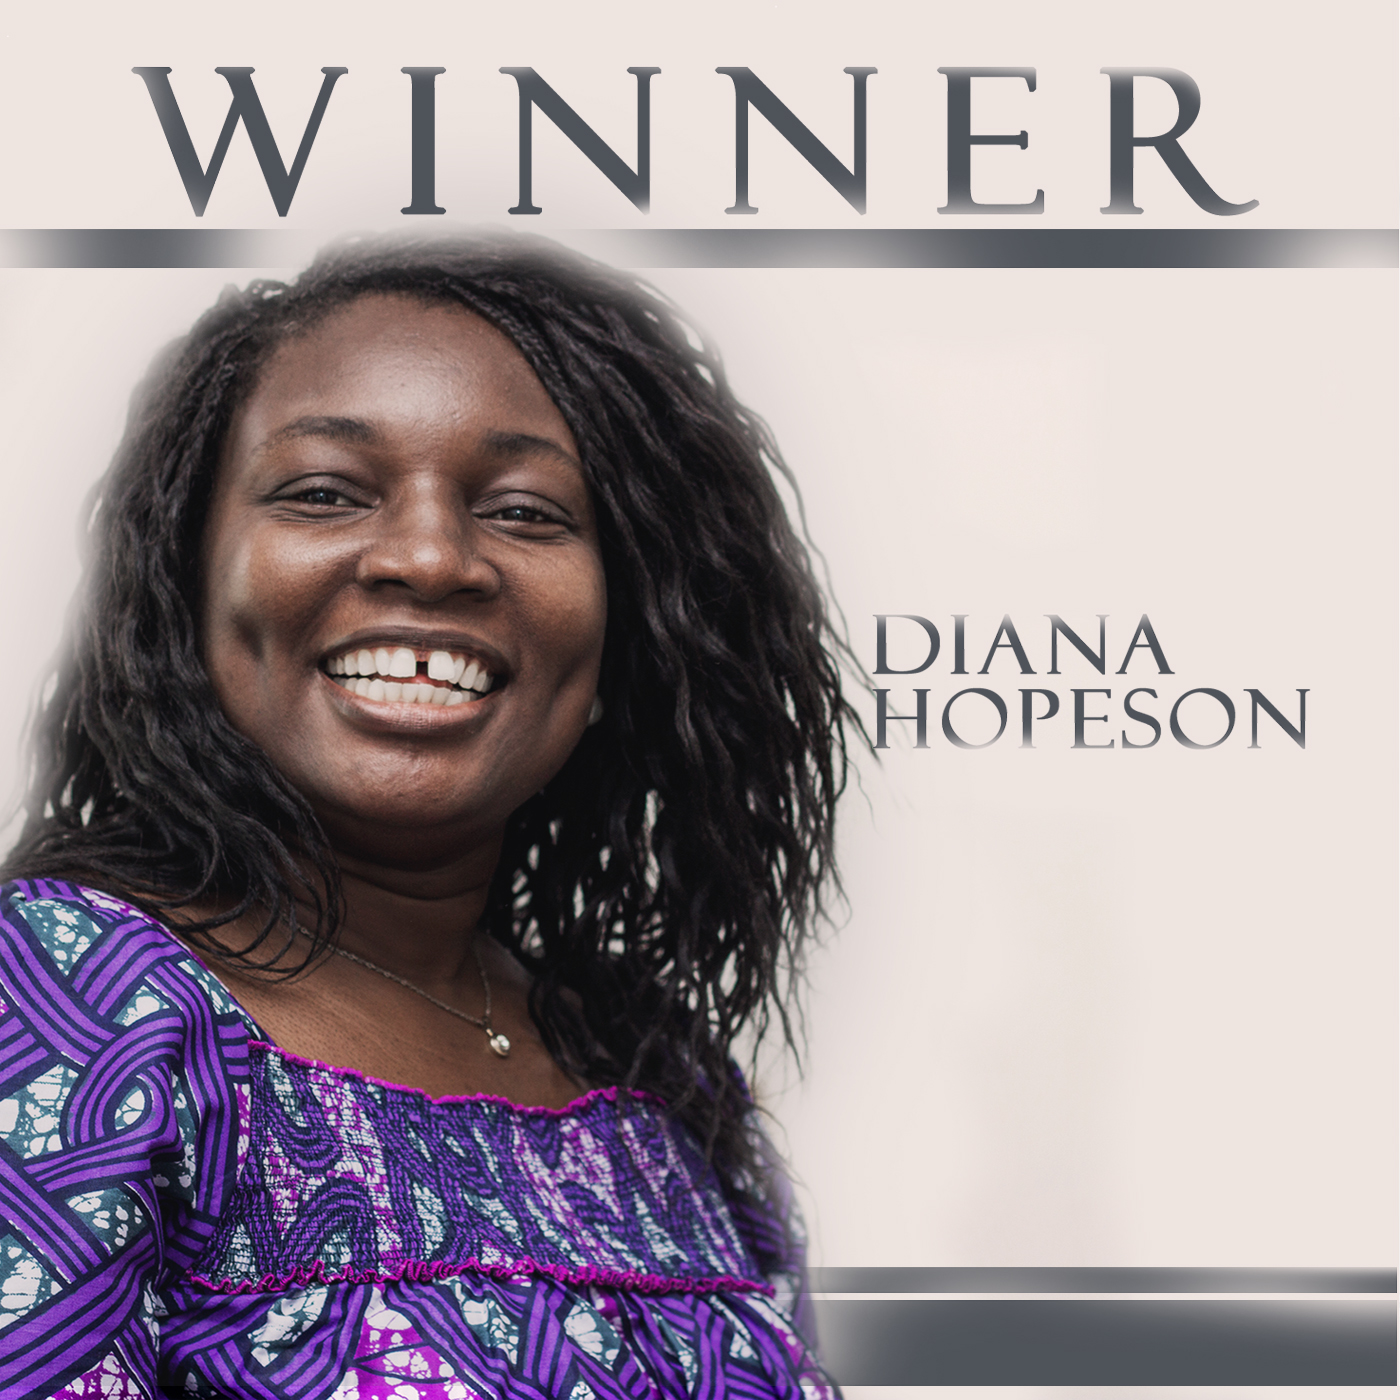 Diana Hopeson's hit Album, Winner